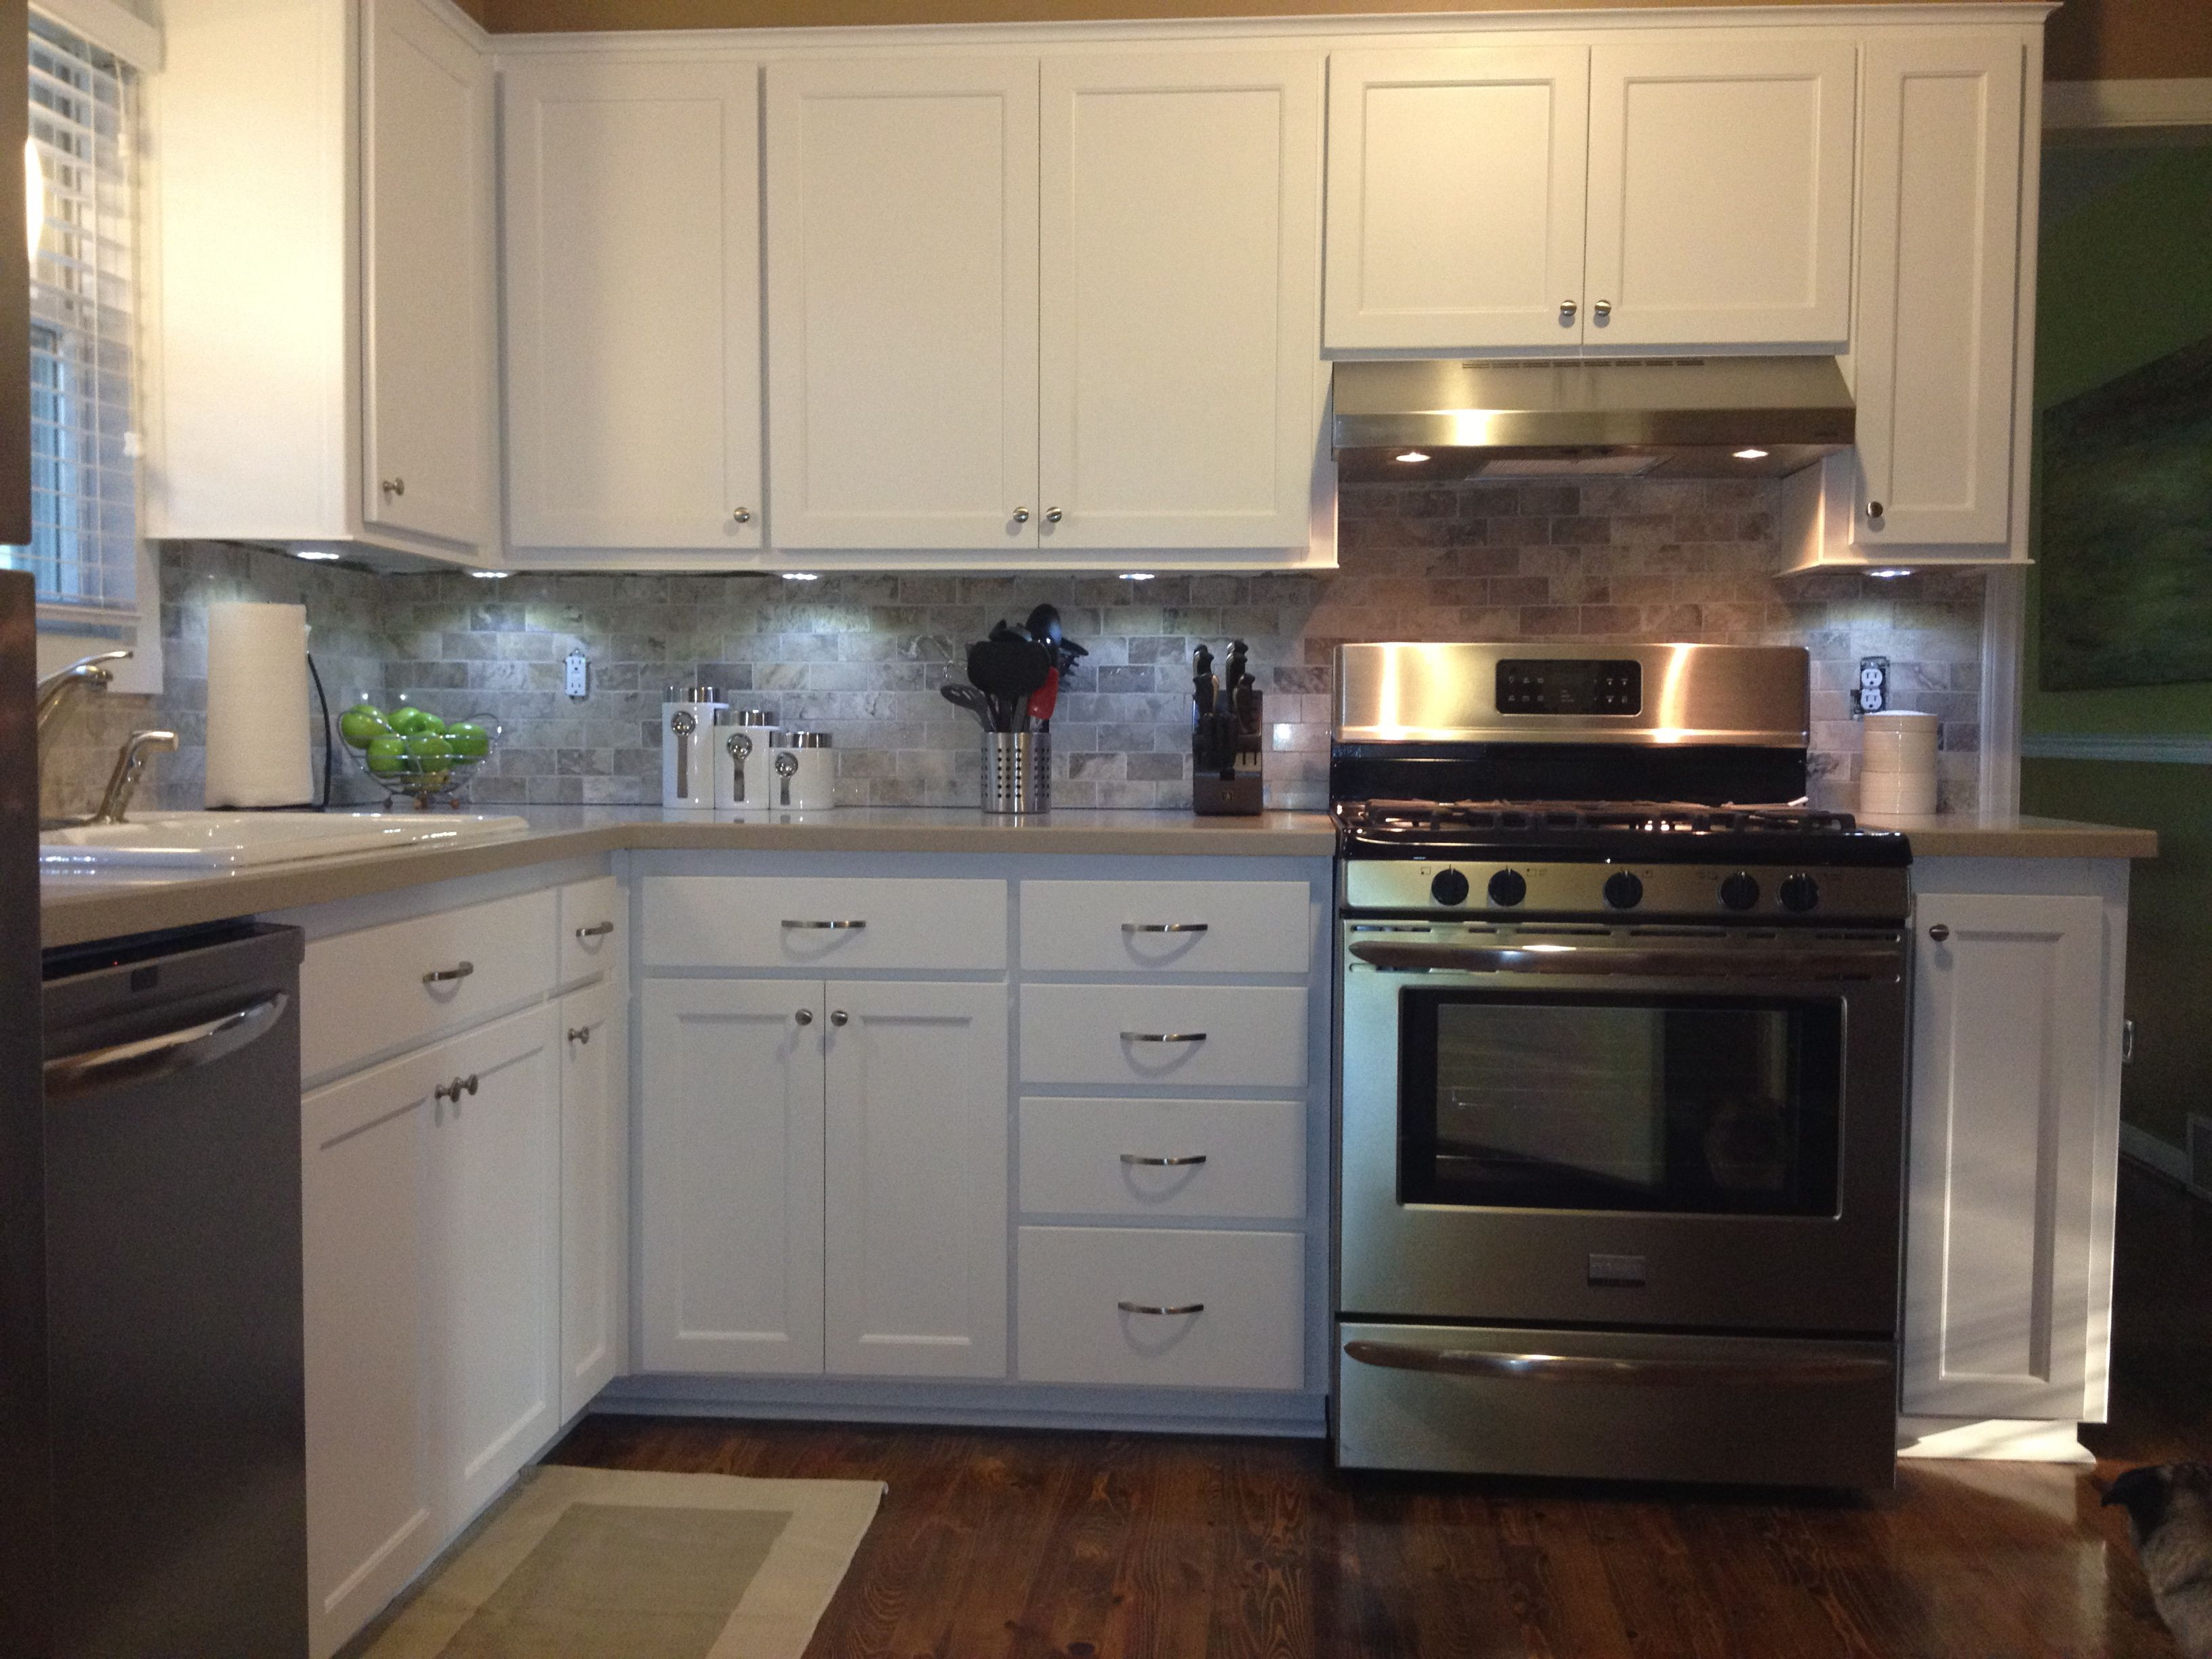 Do You Need A Kitchen Designer: Why Do You Need An Efficient Layout For Your Kitchen